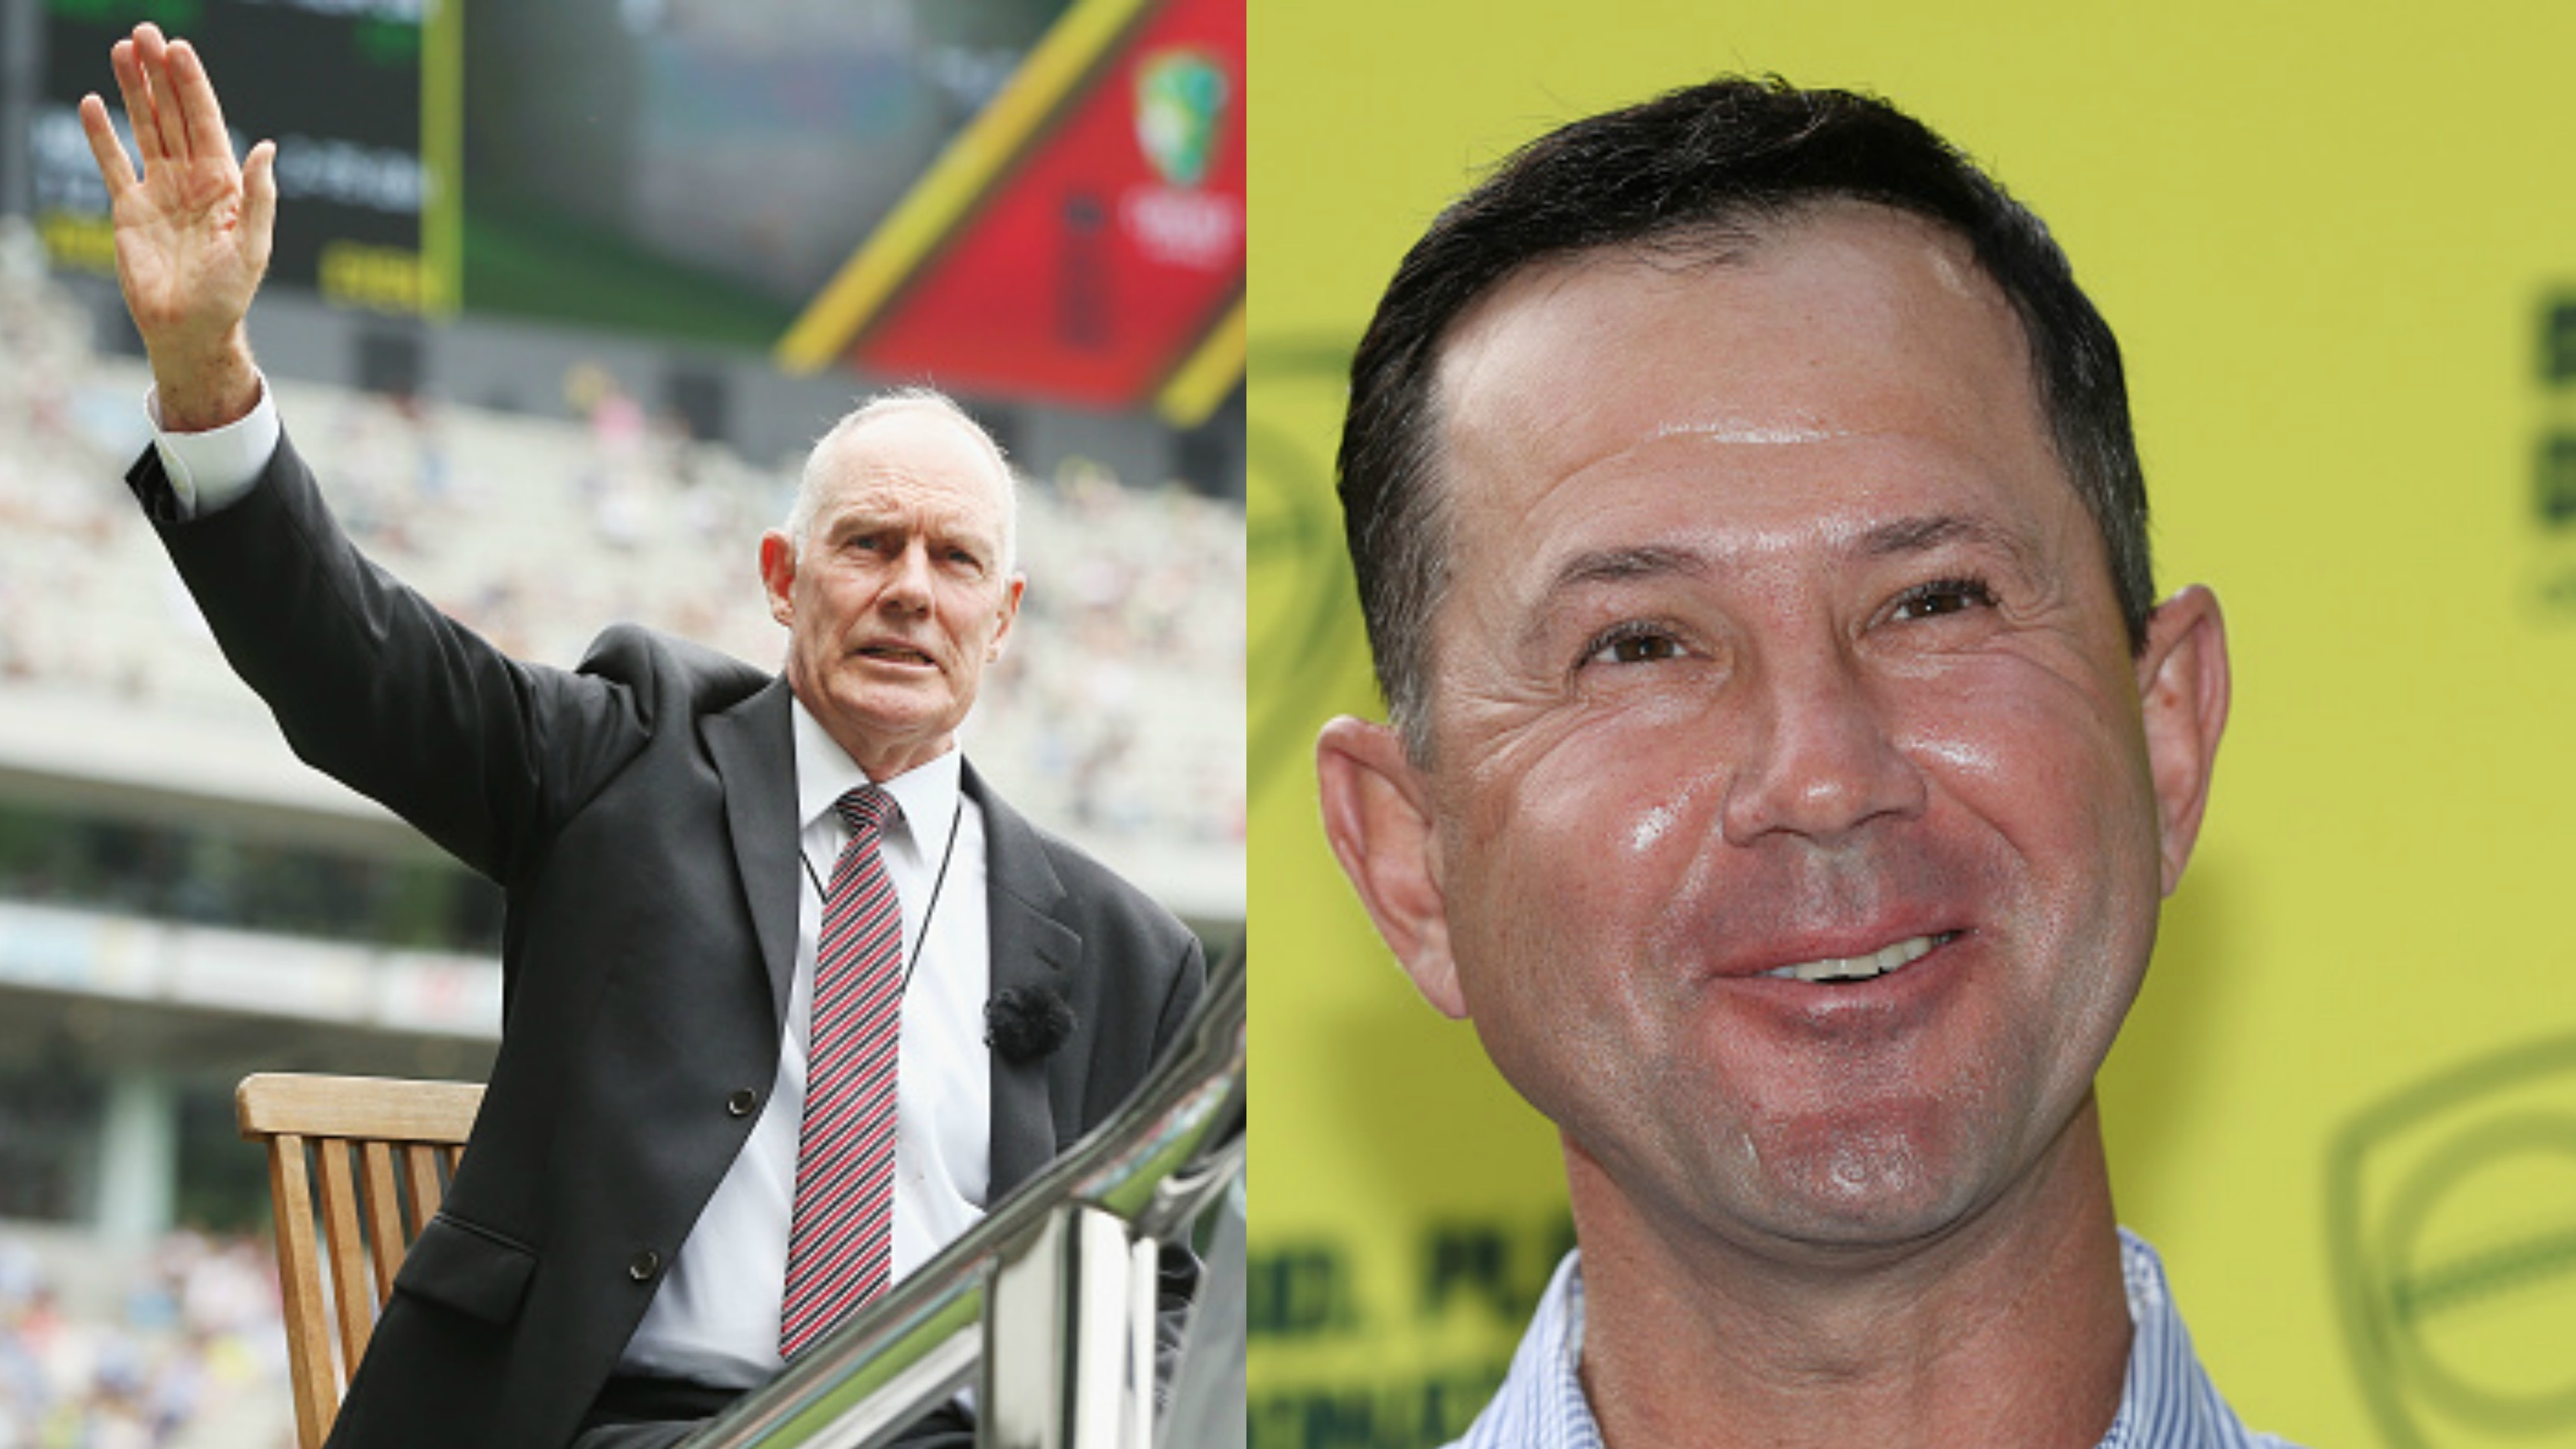 Greg Chappell picks Ricky Ponting as the best Australian batsman ever